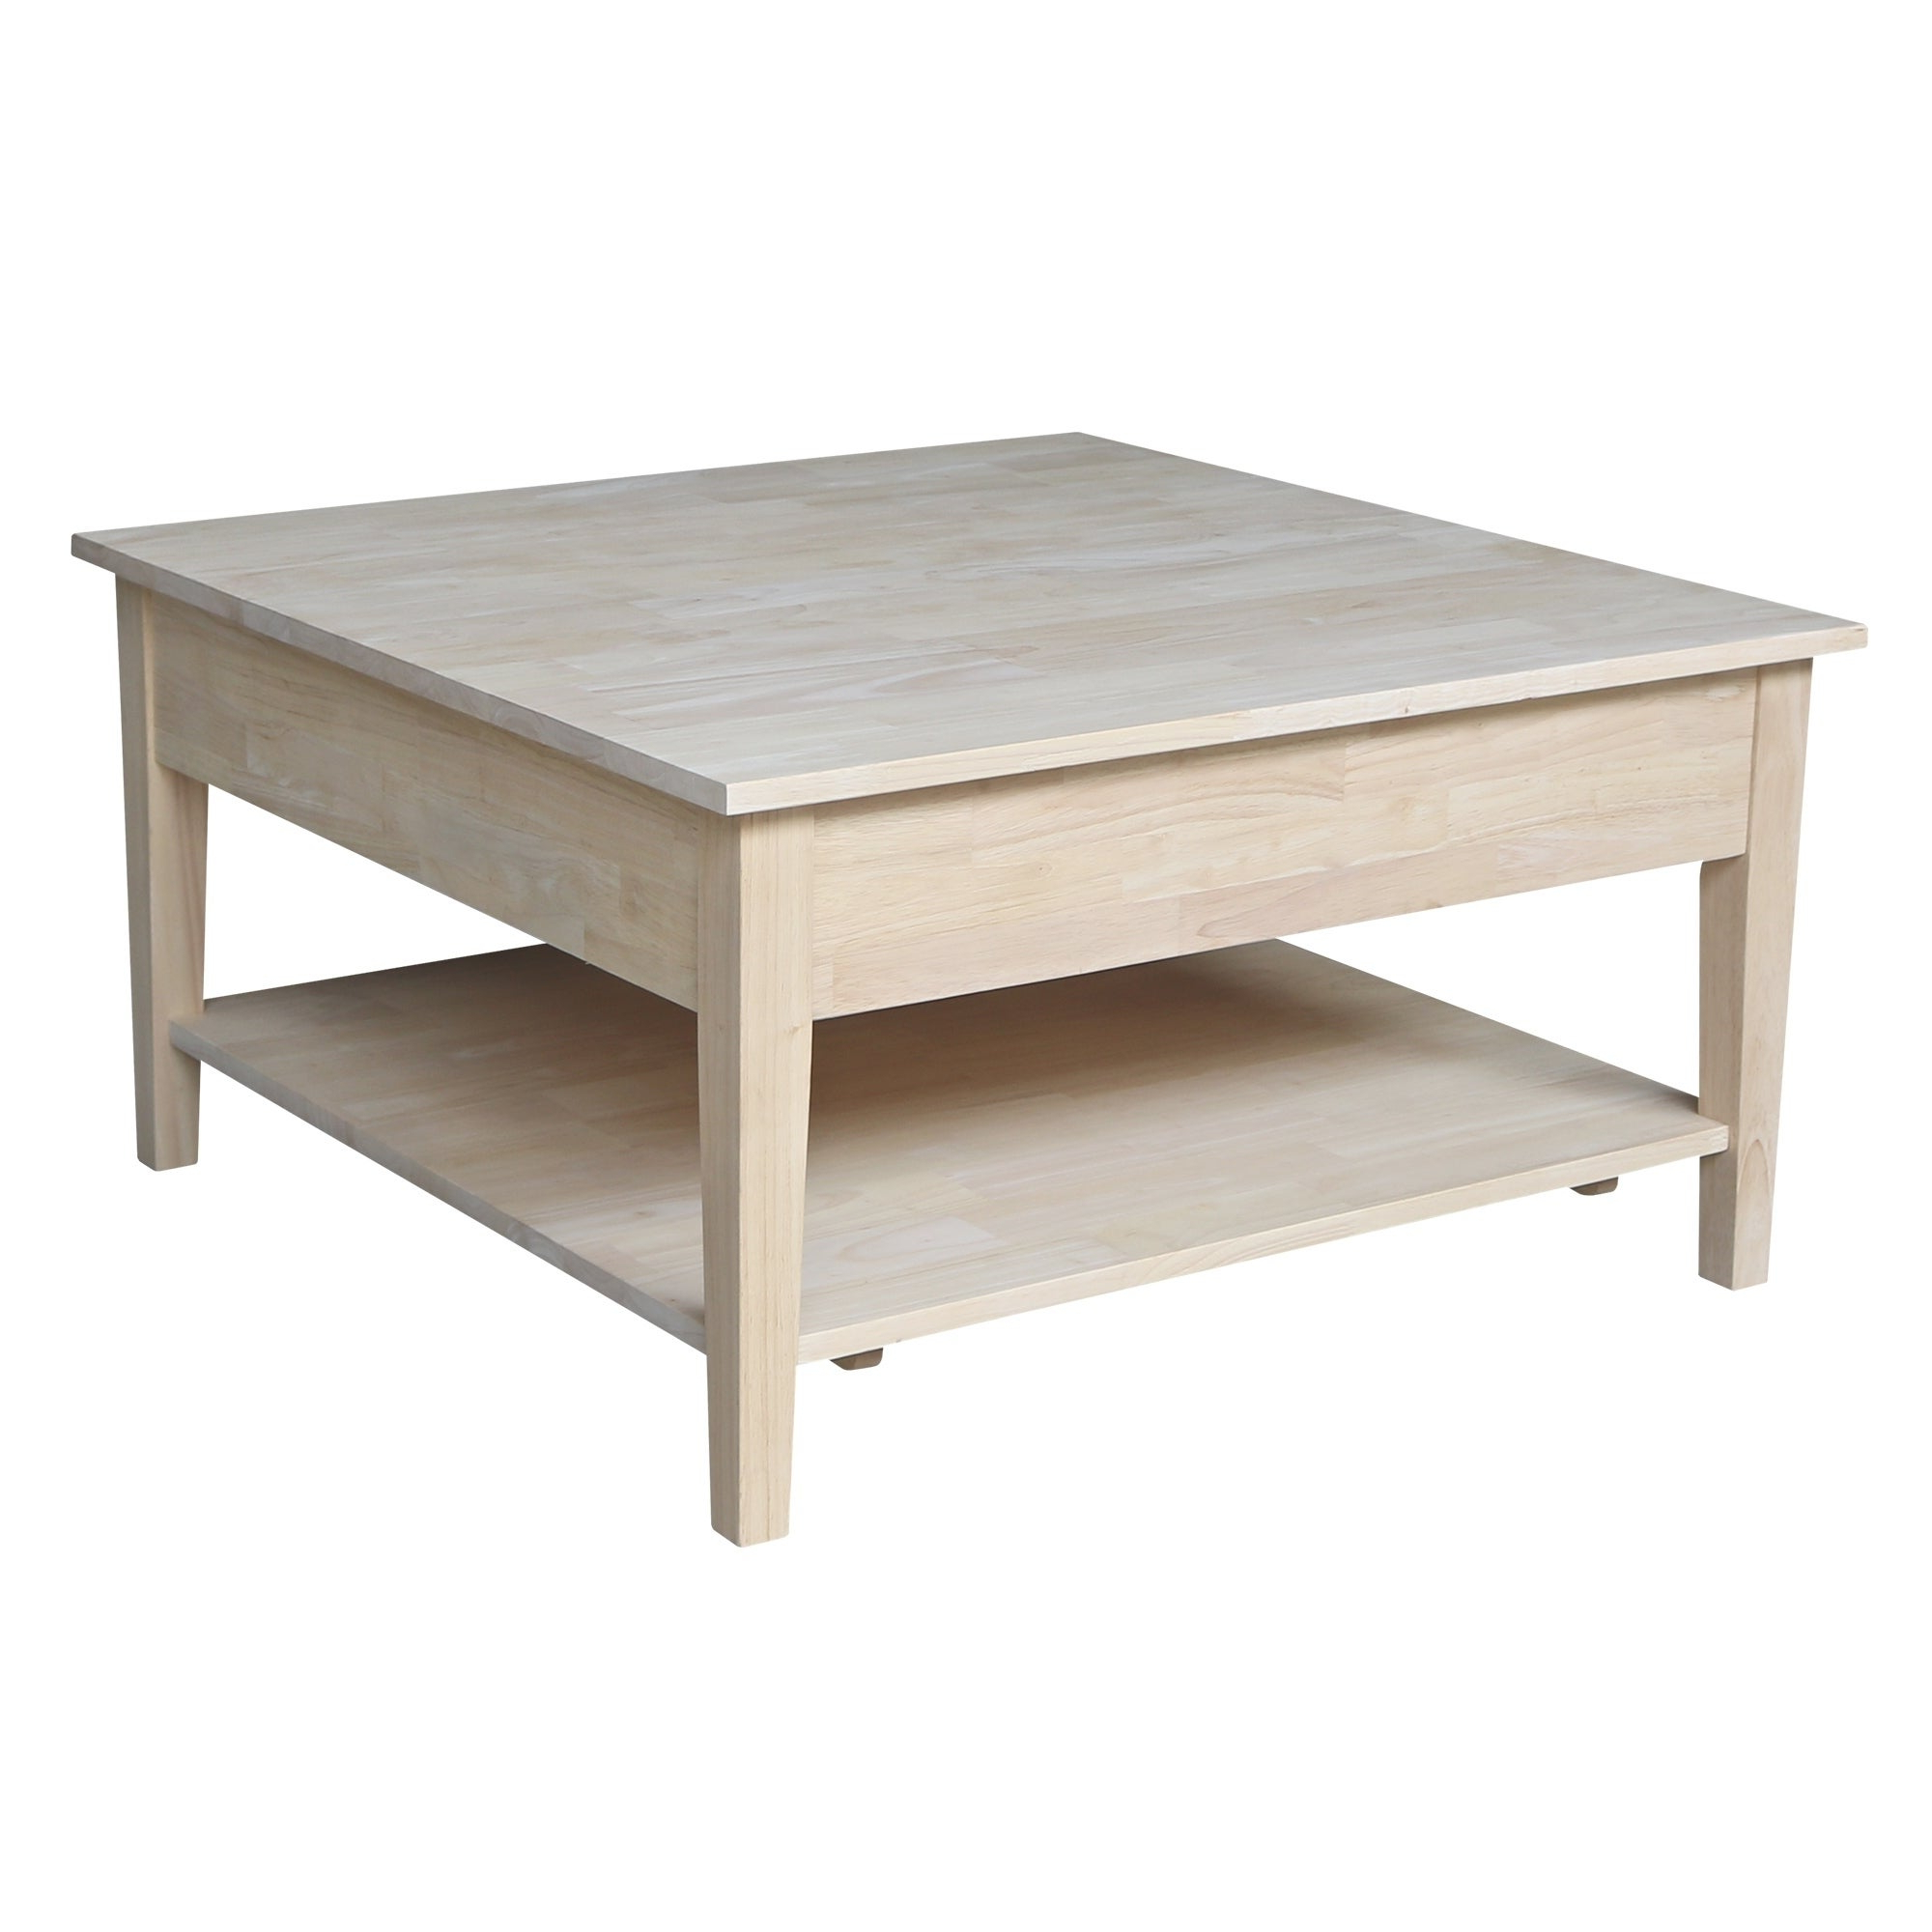 Popular Unfinished Solid Parawood Square Coffee Tables Inside Spencer Square Coffee Table – Unfinished (View 11 of 20)